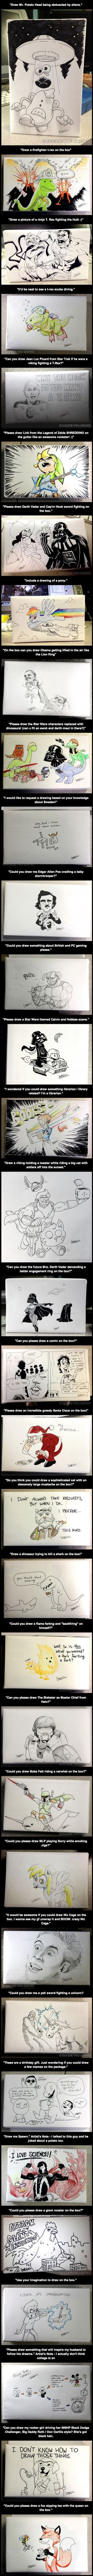 Drawings on boxes